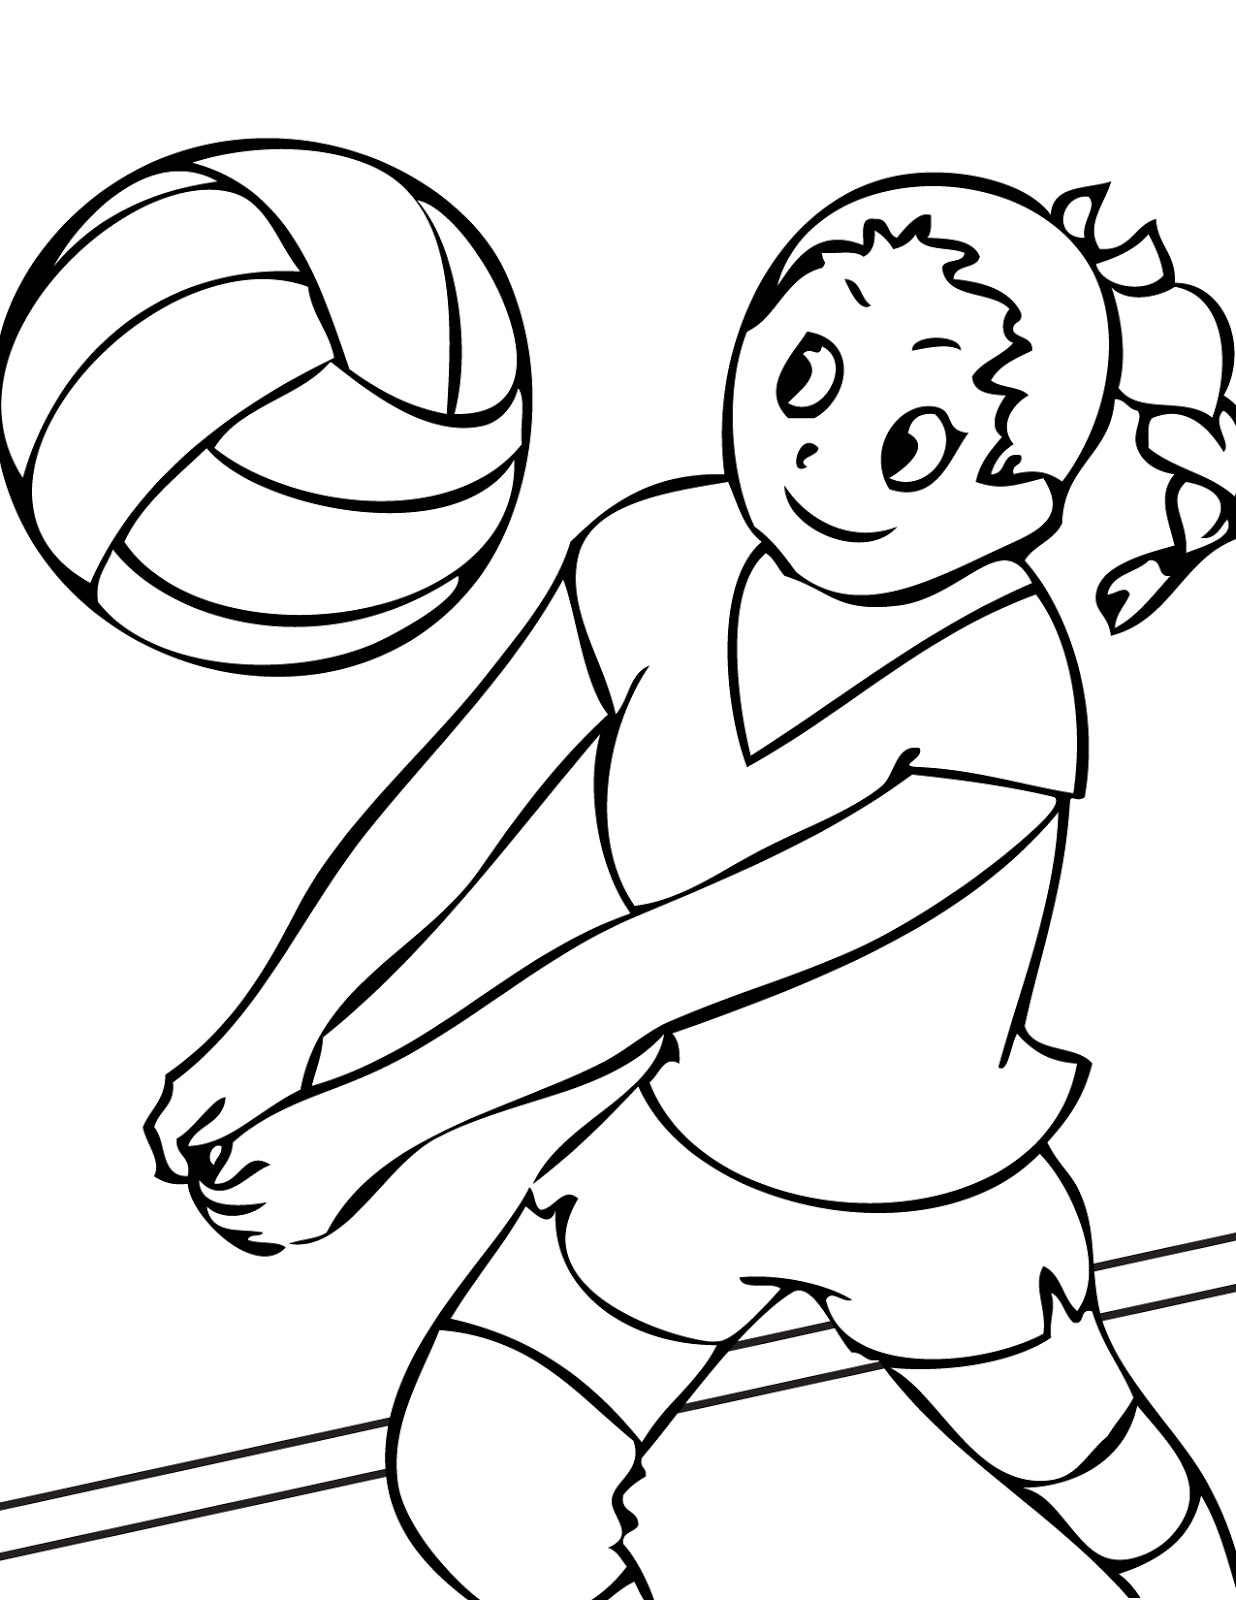 Coloring Pages Sports : Sports coloring pages for kids